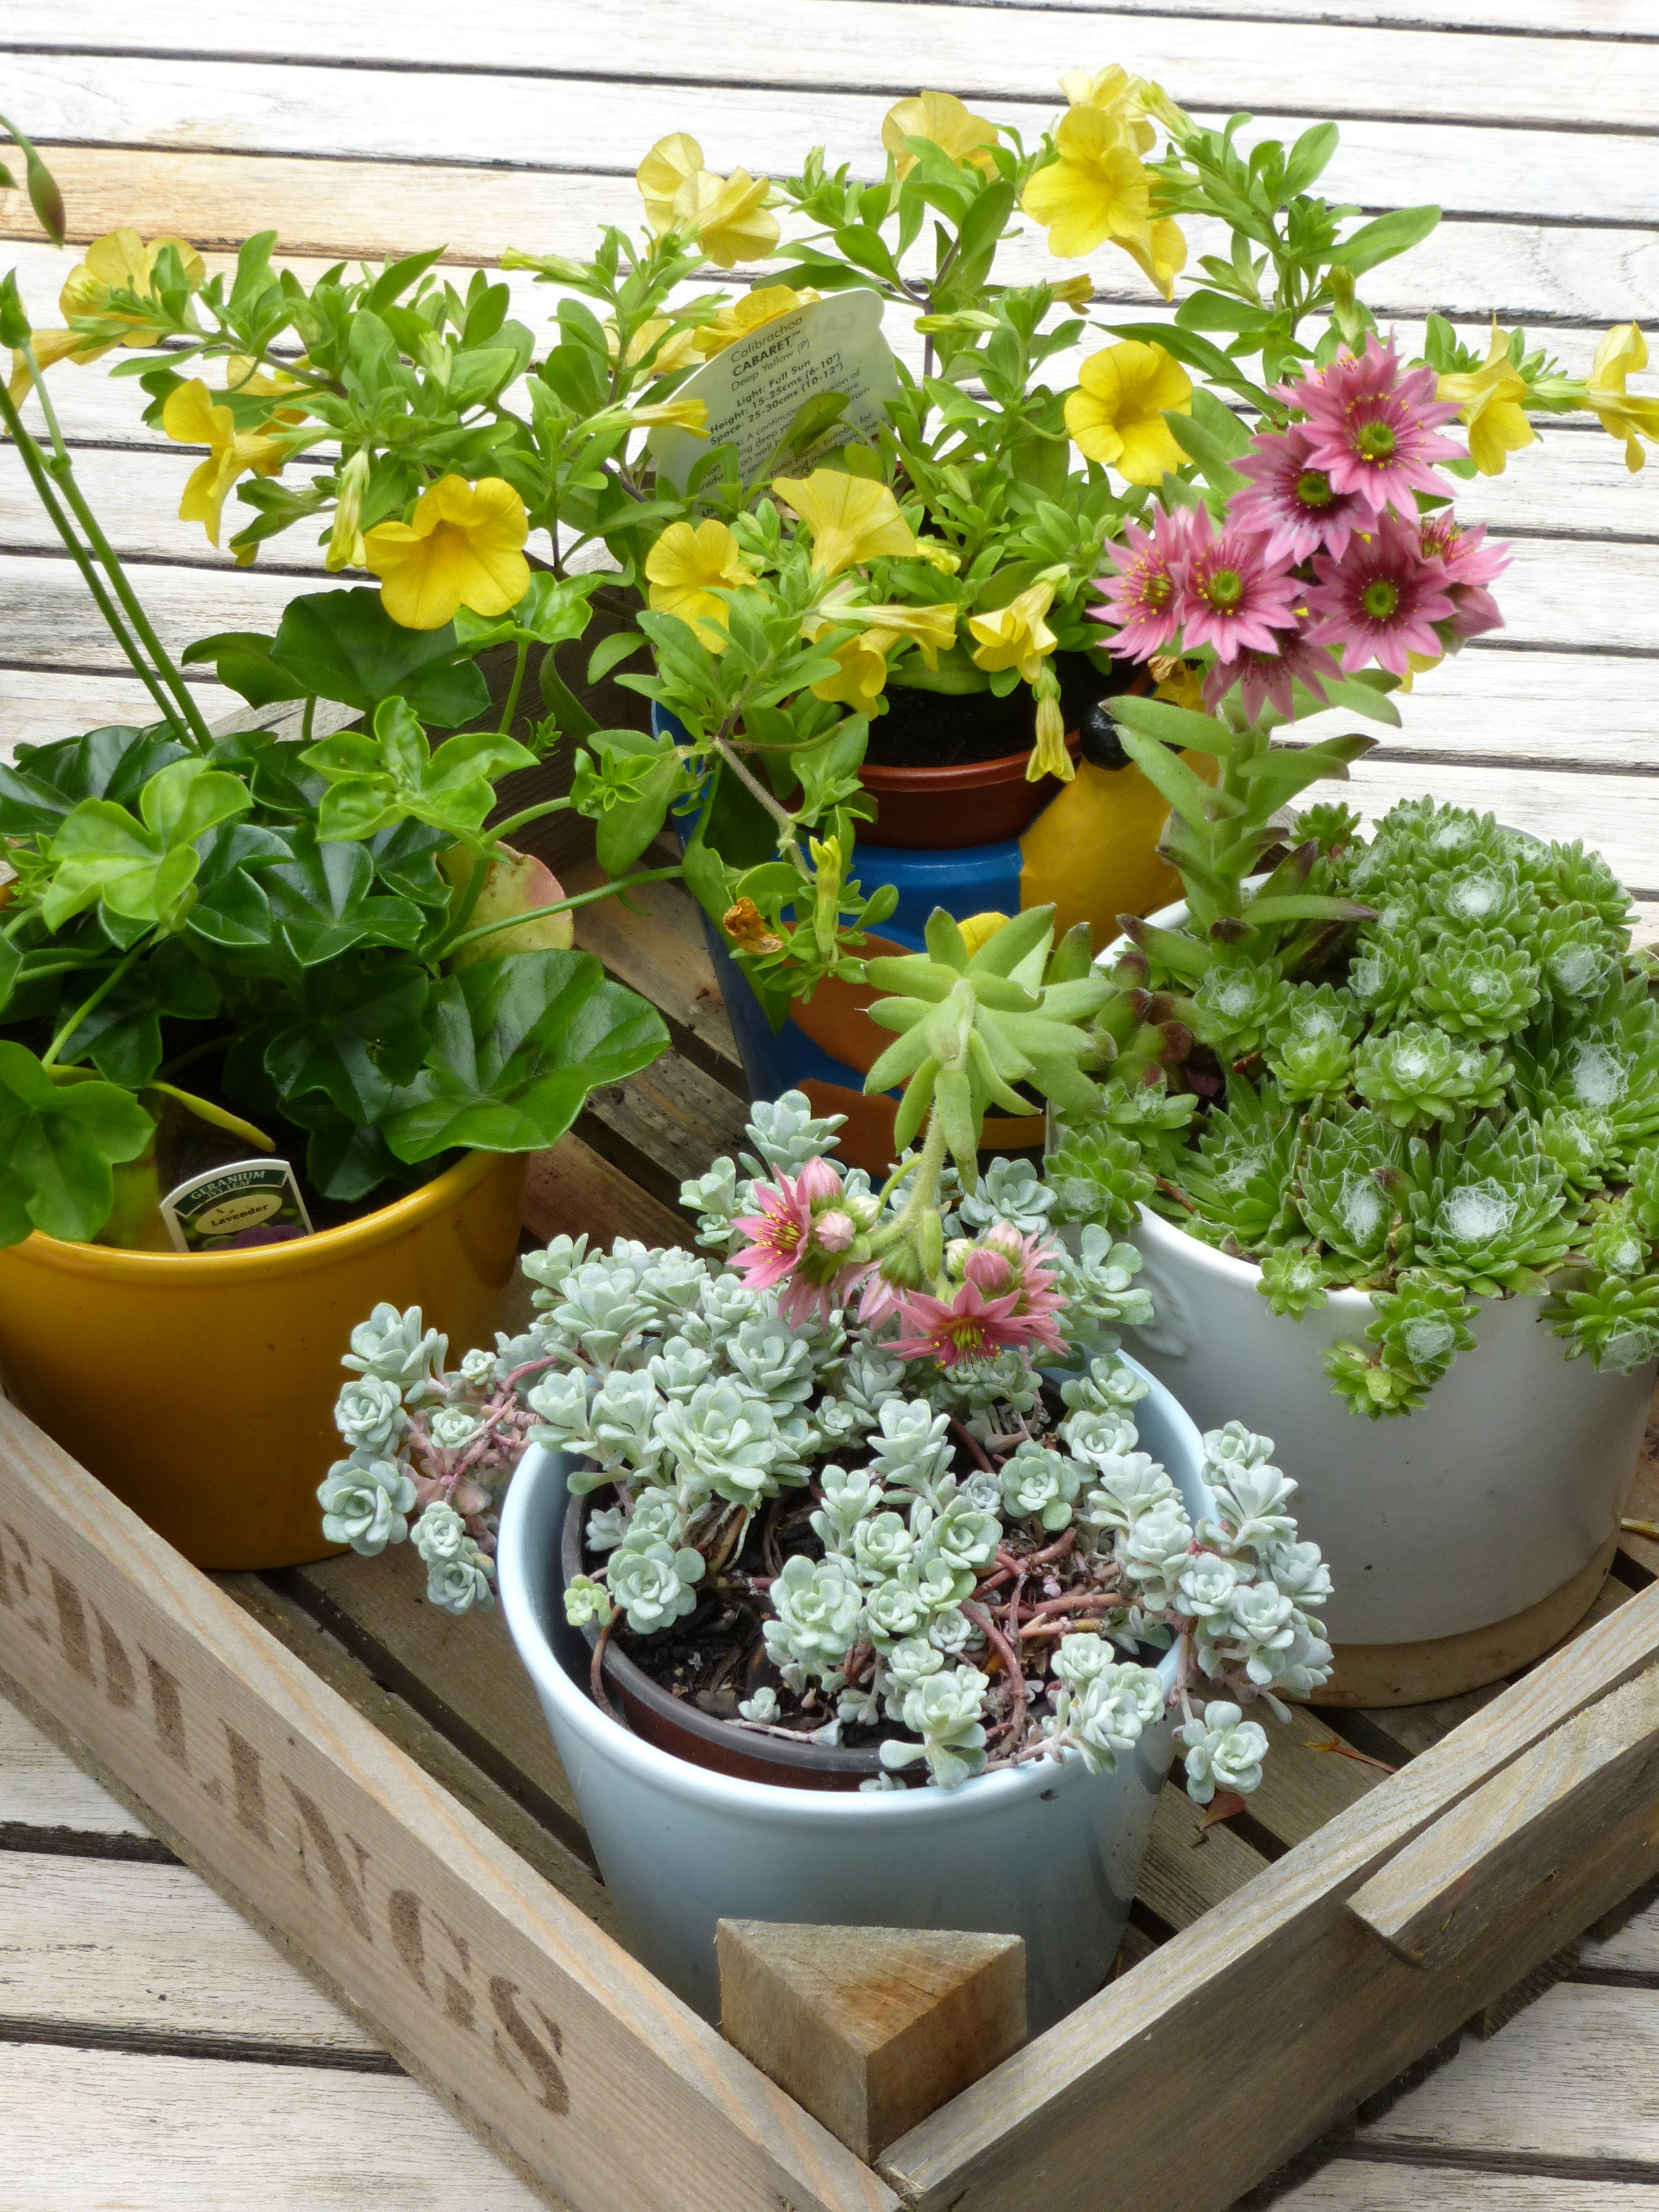 Free stock photo 12943 small crate of potted succulent plants and high angle still life of small crate of potted succulent plants and pink and yellow flowers mightylinksfo